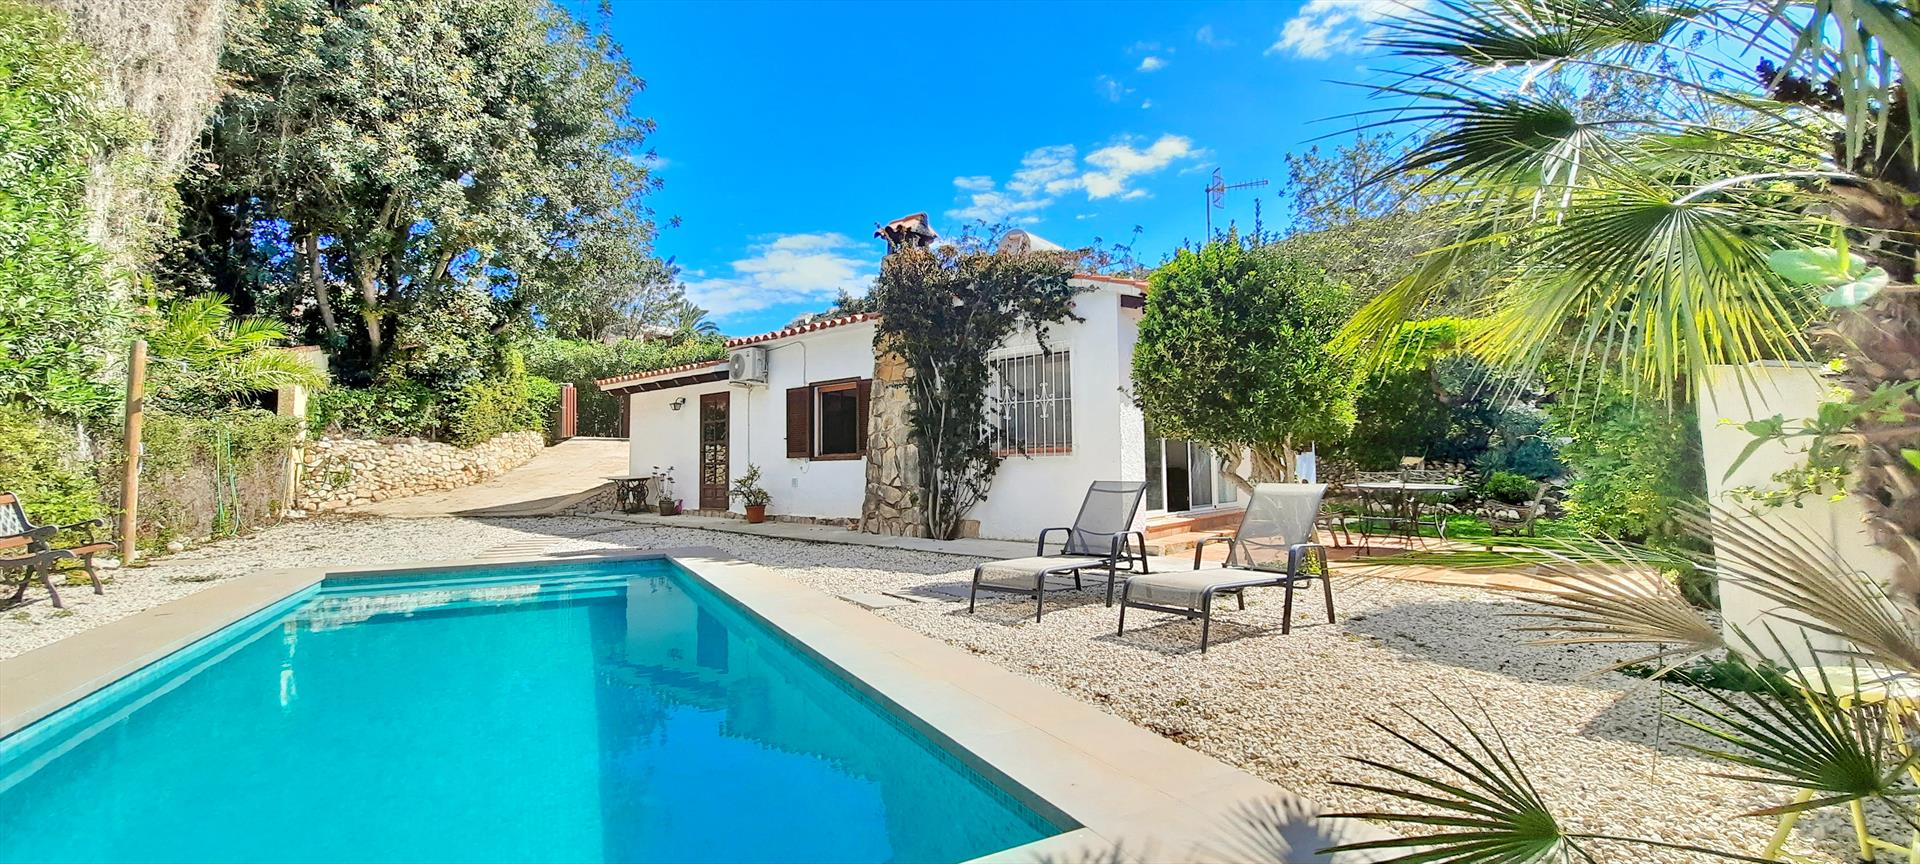 Villa El Nido,Classic and cheerful villa  with private pool in Moraira, on the Costa Blanca, Spain for 4 persons.....